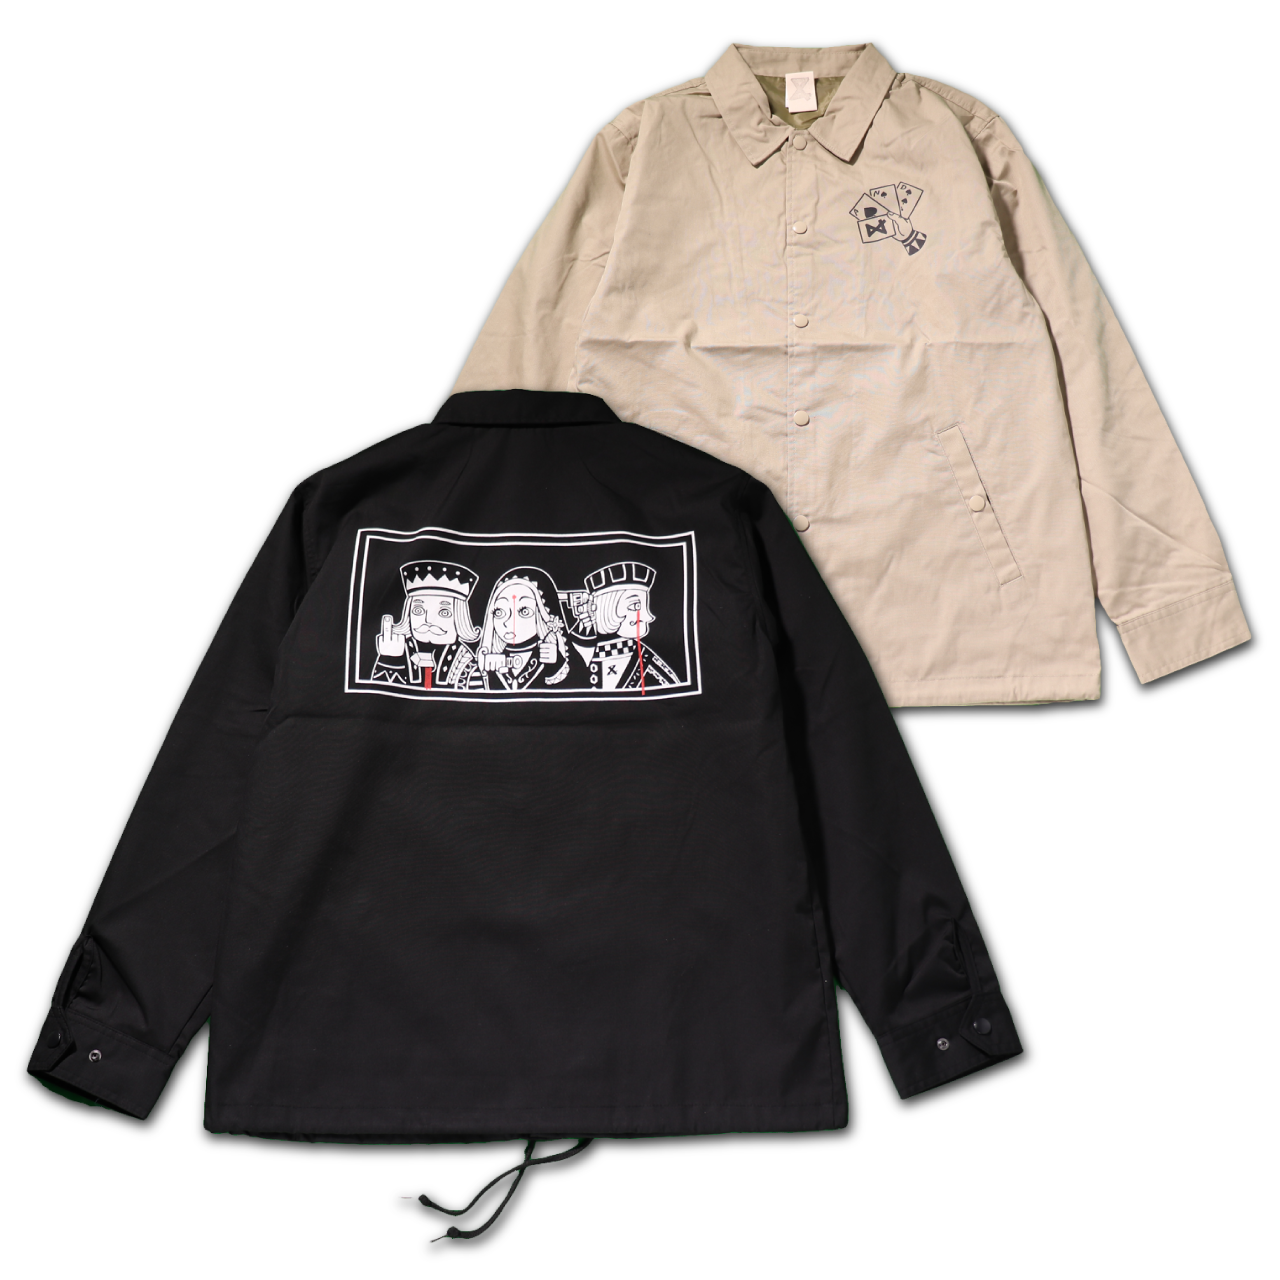 Black Jack Coach jacket